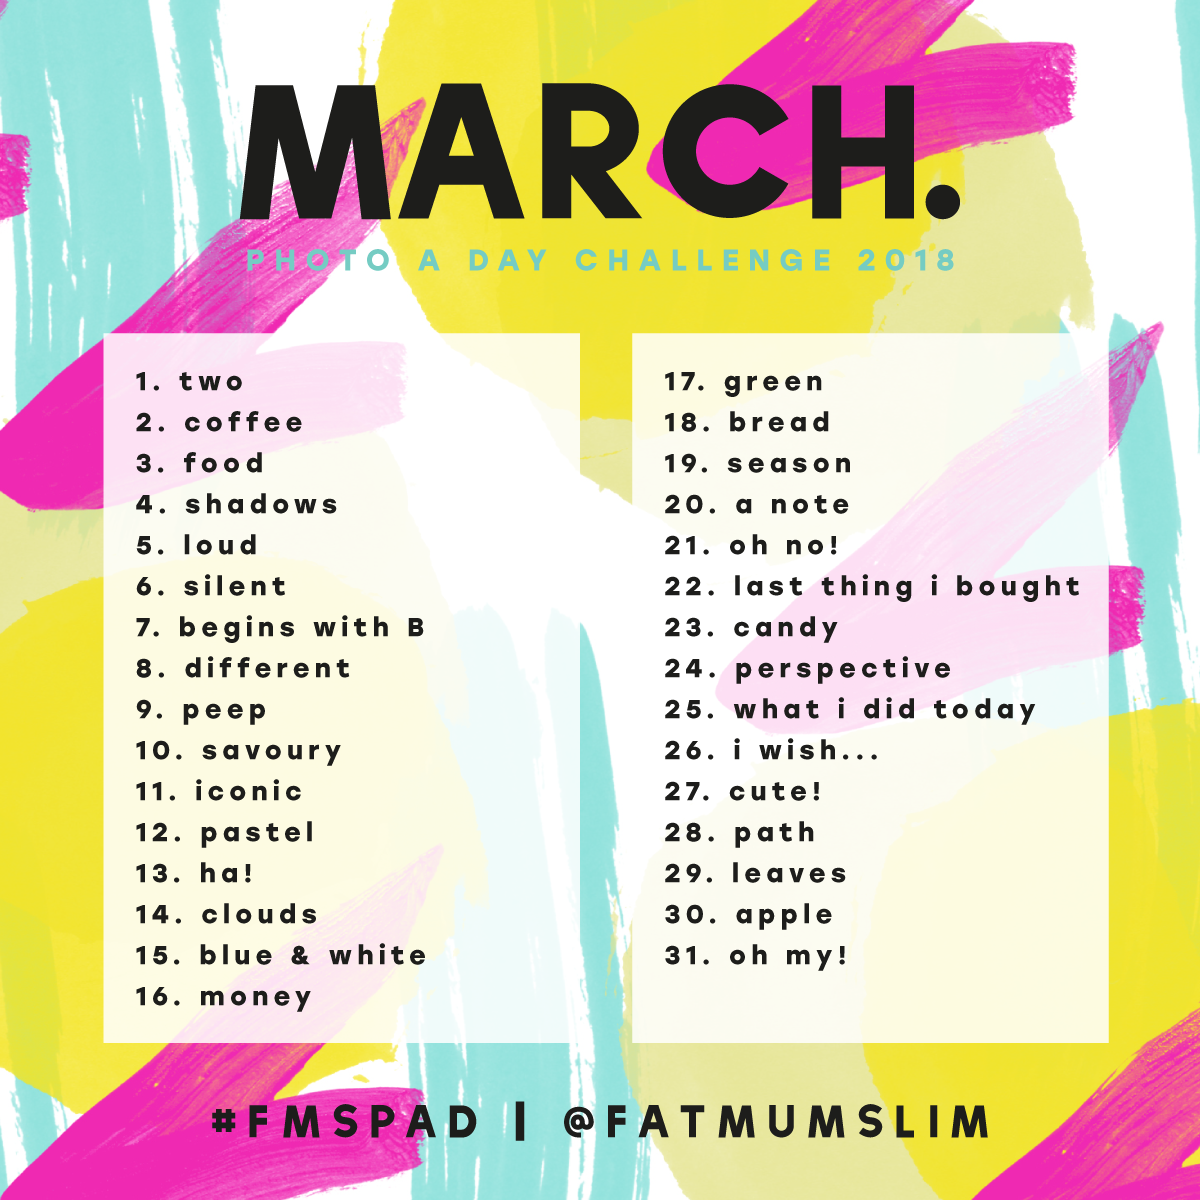 Just look at the list each day and take a photo using the prompt as  inspiration. So dccd27bd60b